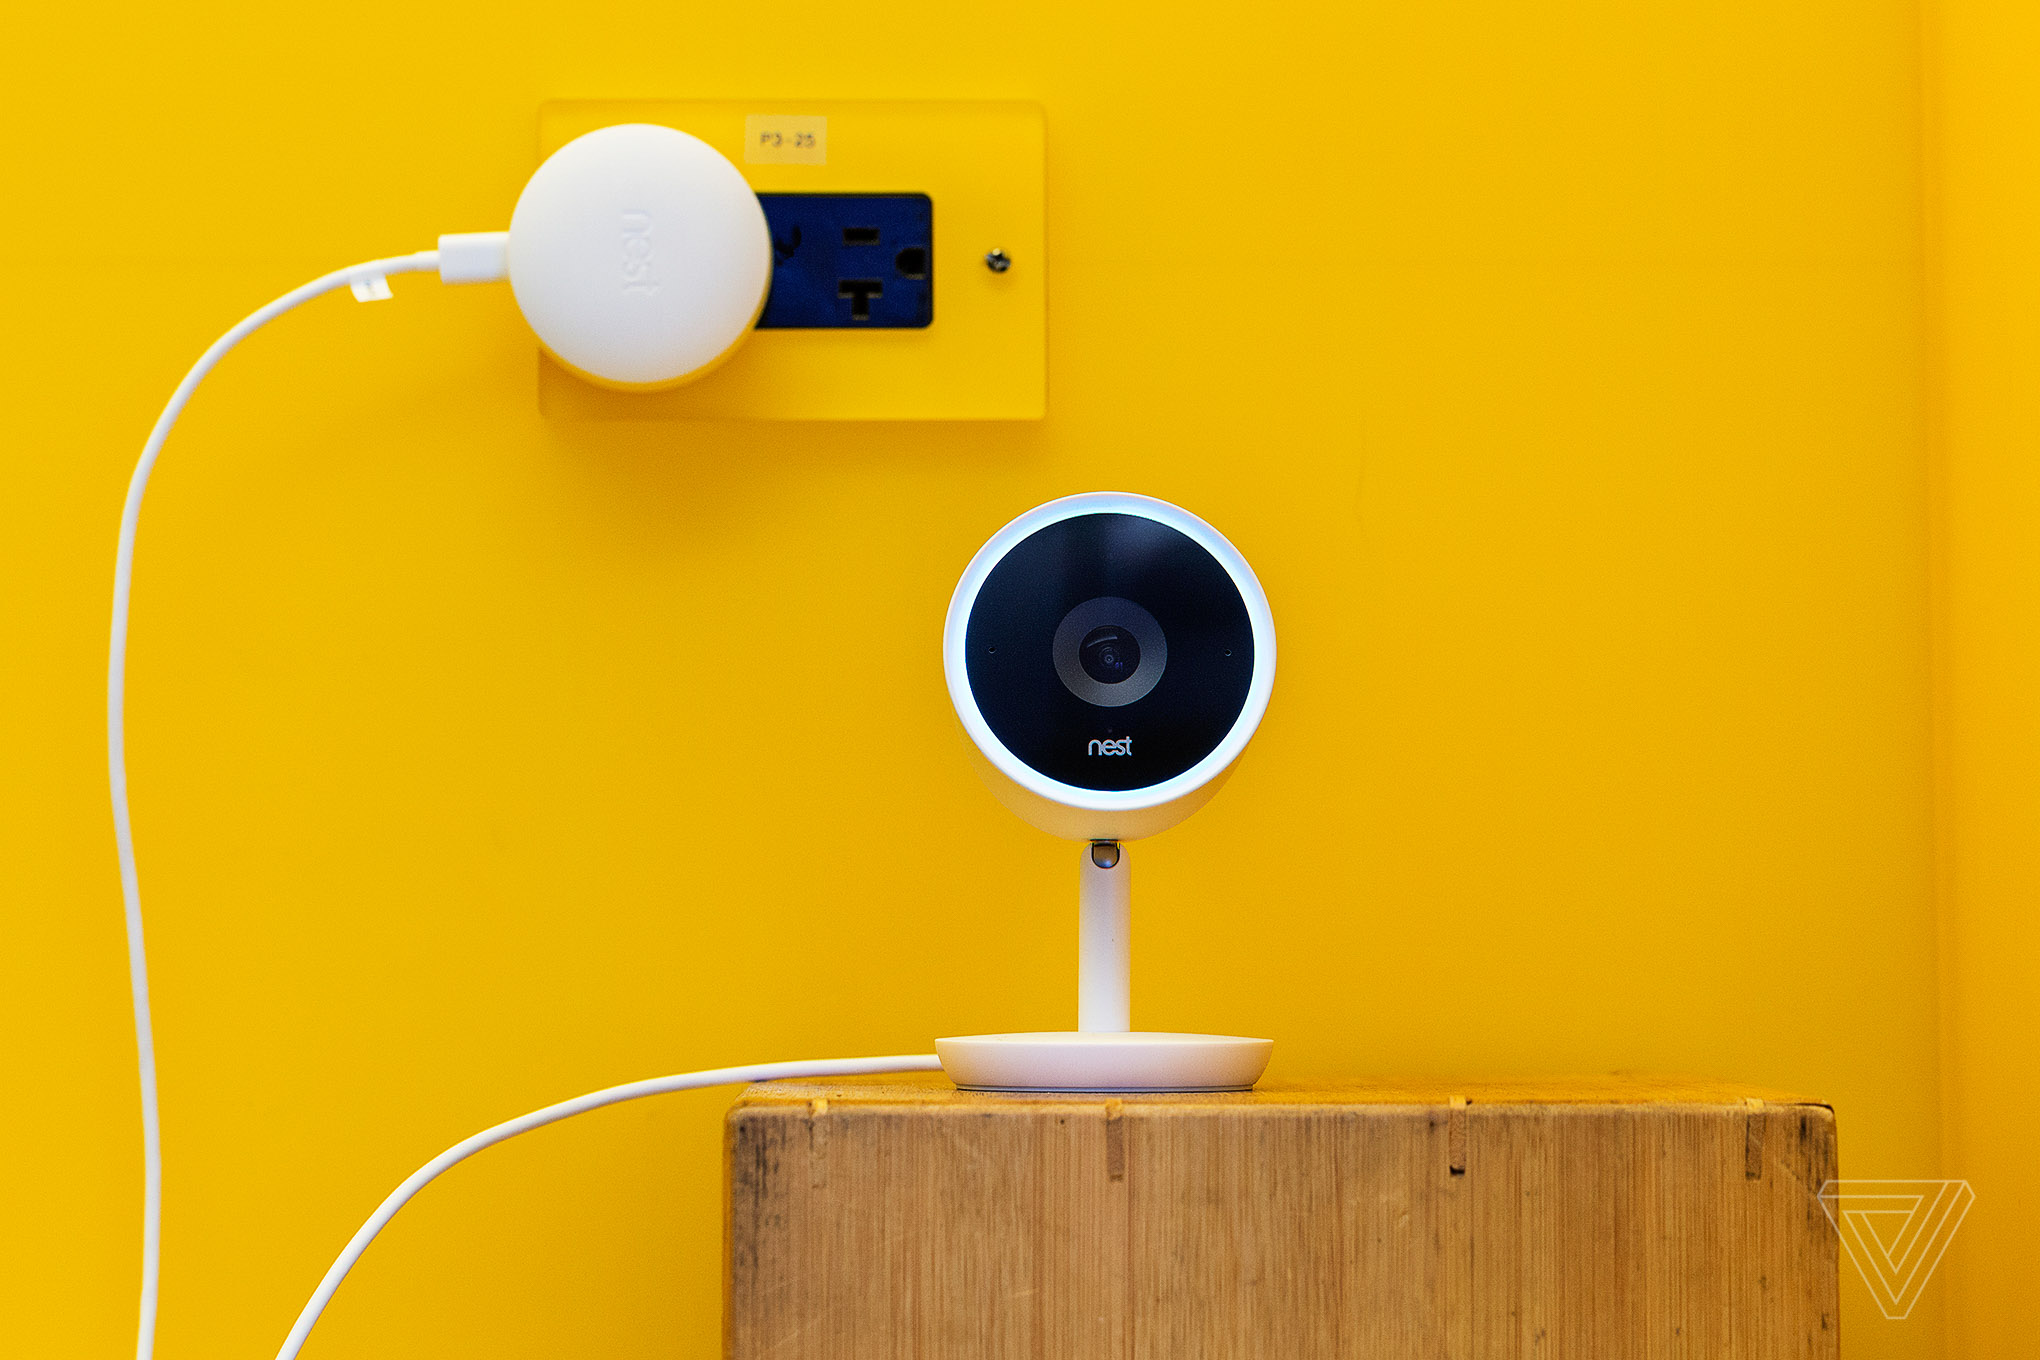 nest u0027s new home camera is an interesting toy the verge